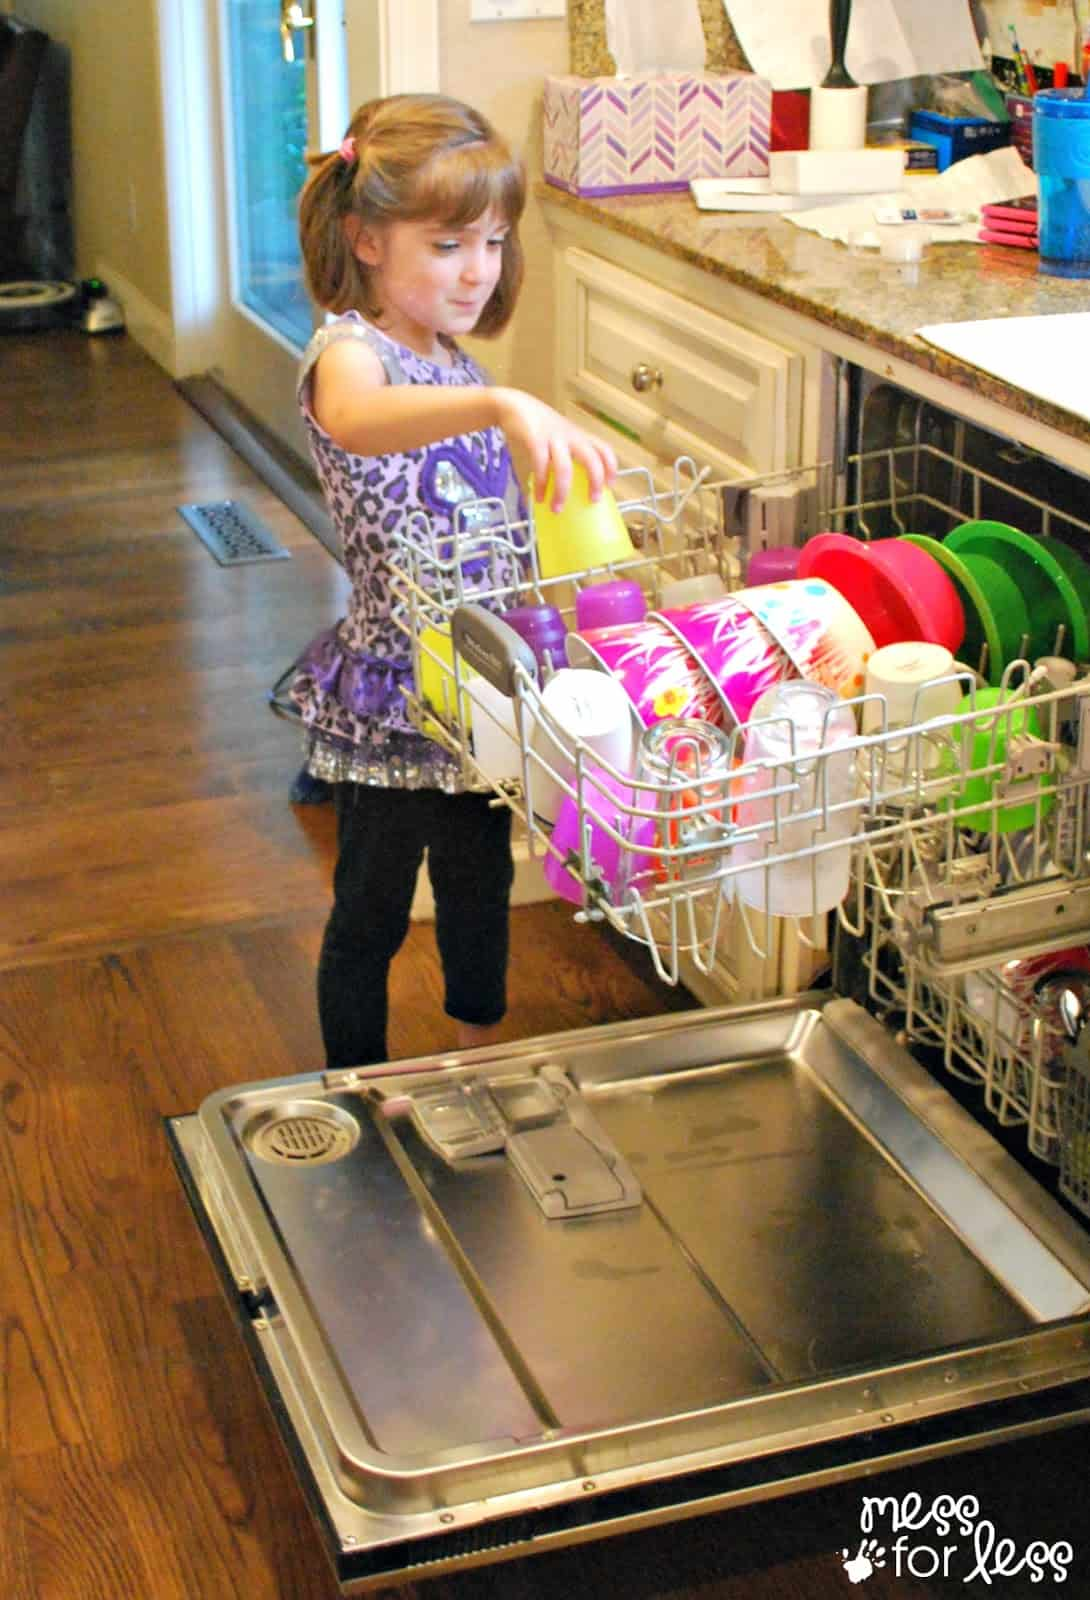 Tips To Teach Kids To Use The Dishwasher